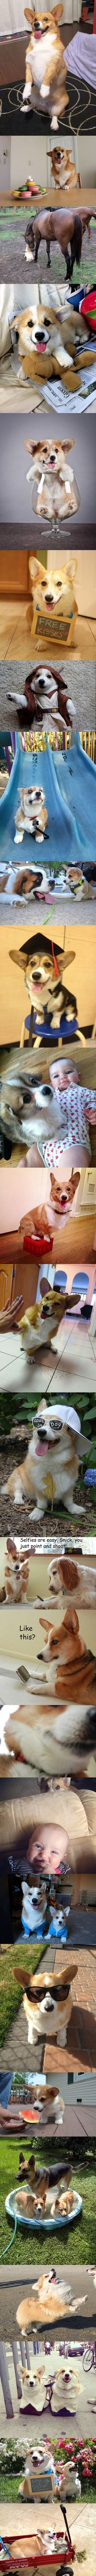 Corgis are the best…I want a corgi